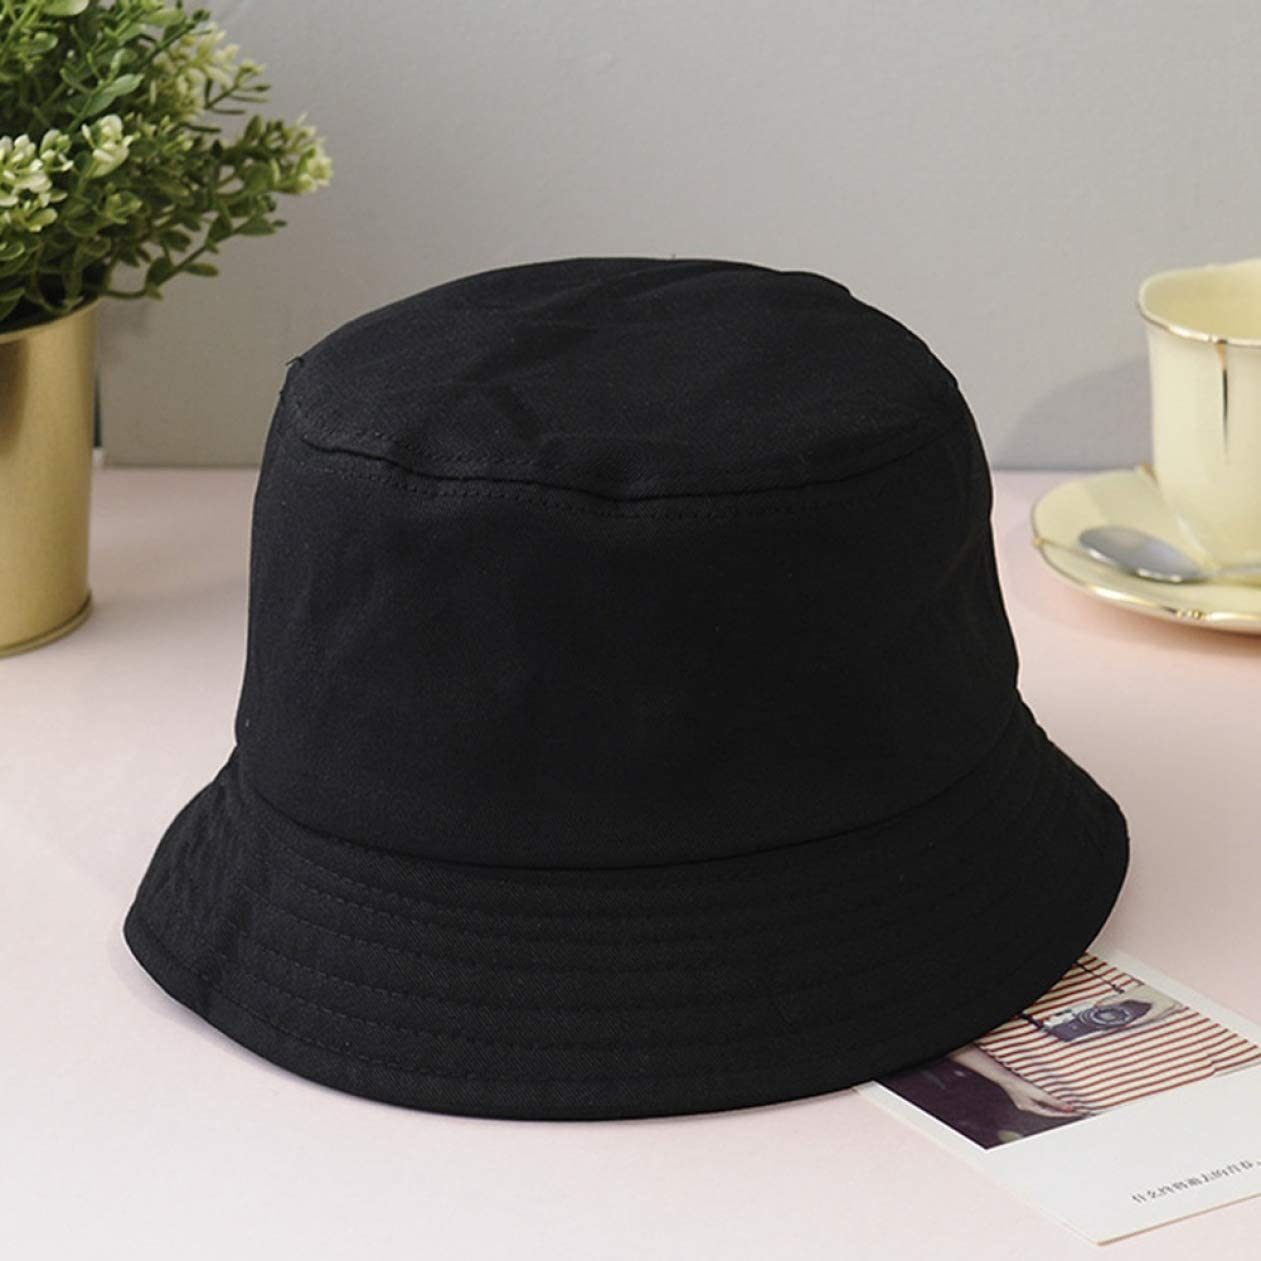 Picnic and Other Outdoor Activities 4h6yerf rational Adult//Children Cotton Adults Bucket Hat Summer Fishing Fisher Beach Sun Cap UK for Camping